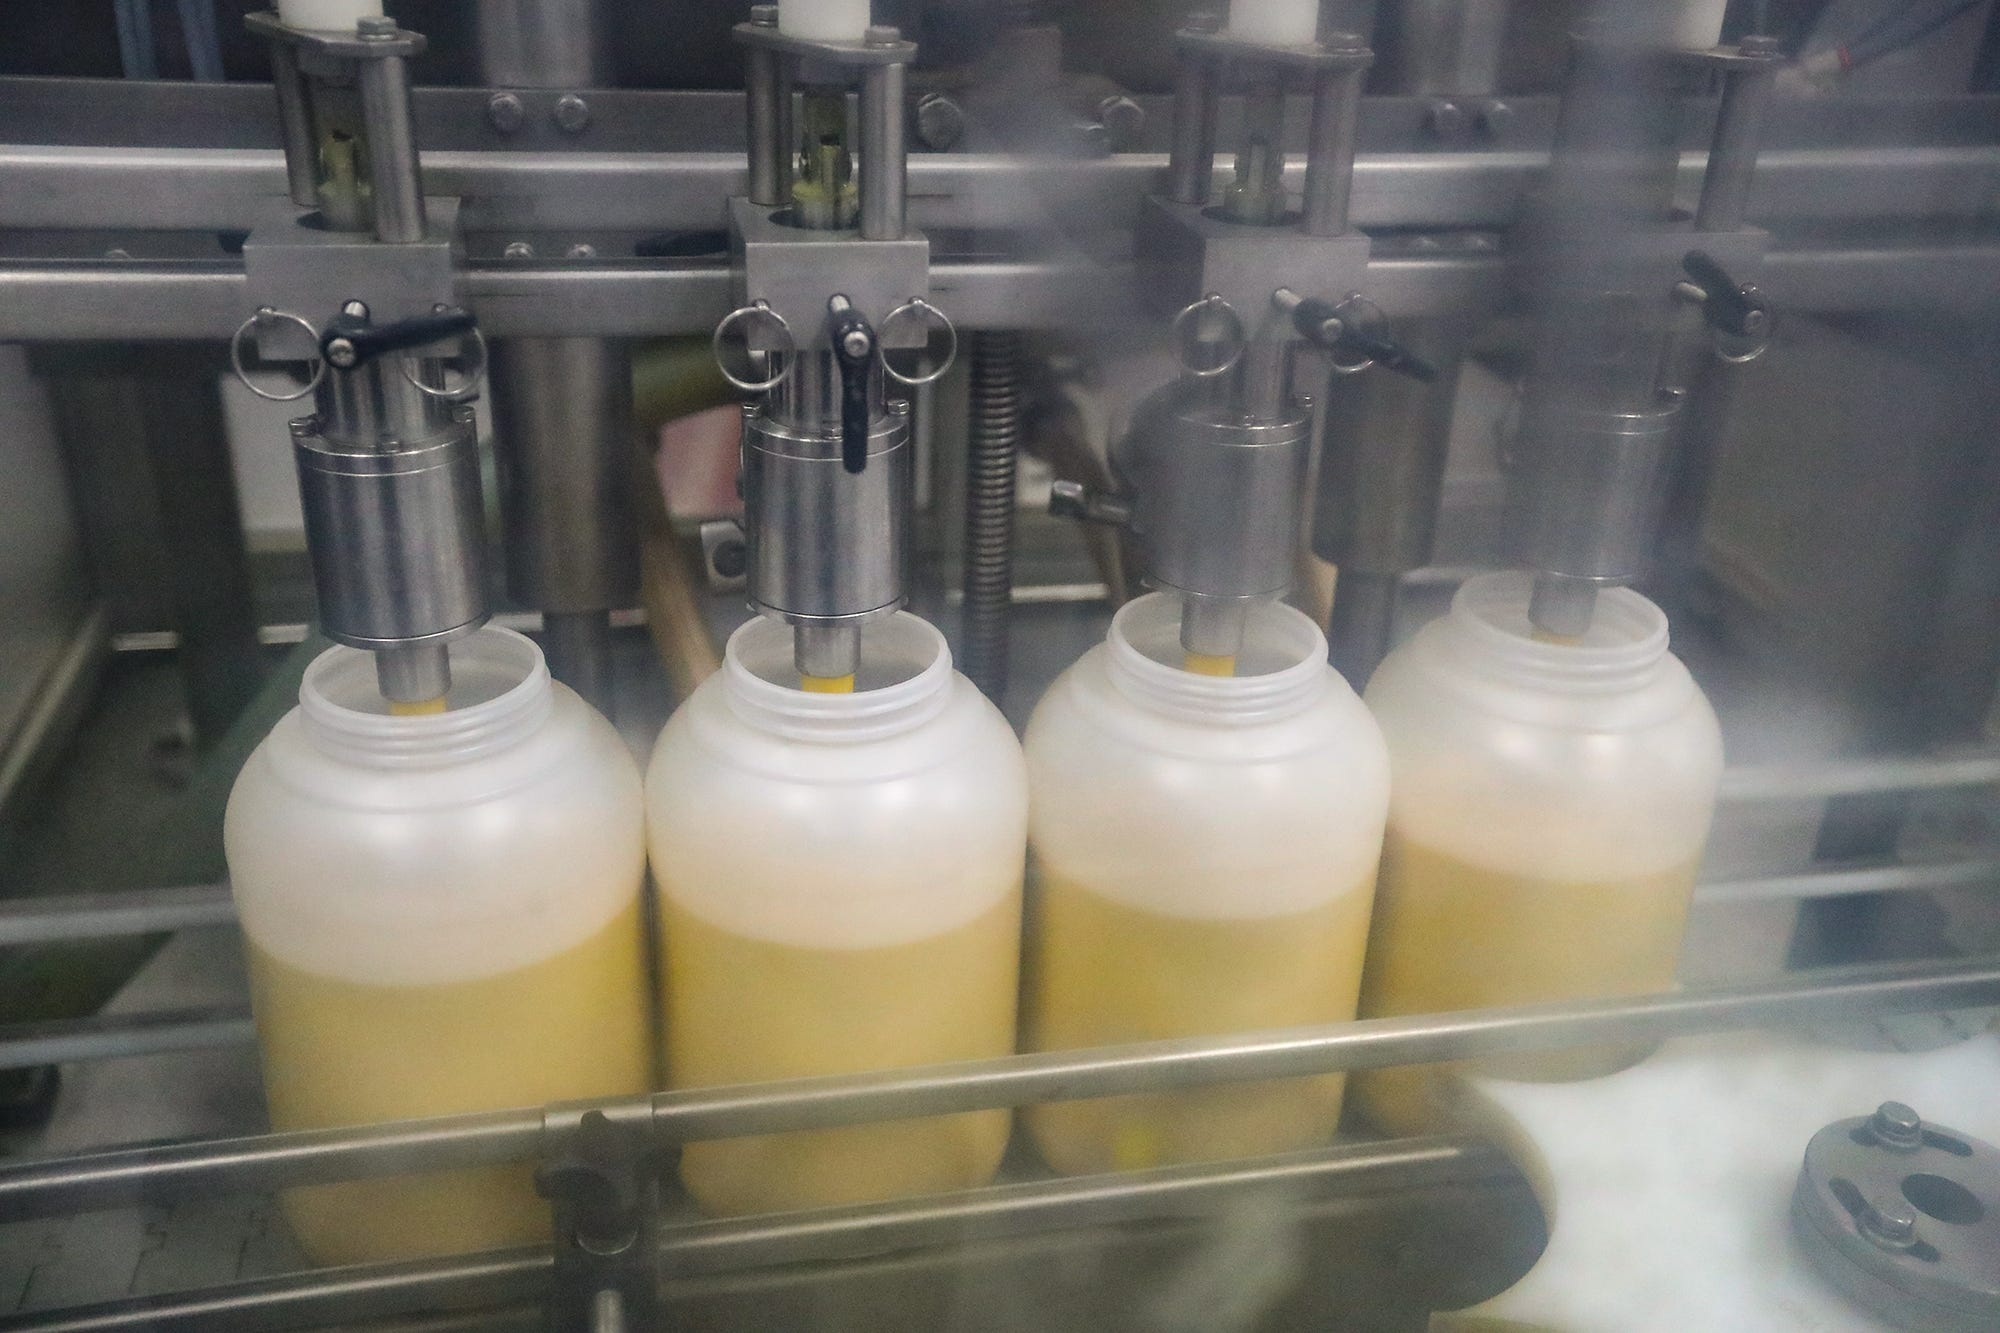 One gallon mustard jugs filled at Wisconsin Spice are destined for foodservice companies and restaurants. Retail, foodservice and similar packaging operations are about a quarter of mustard company's business.